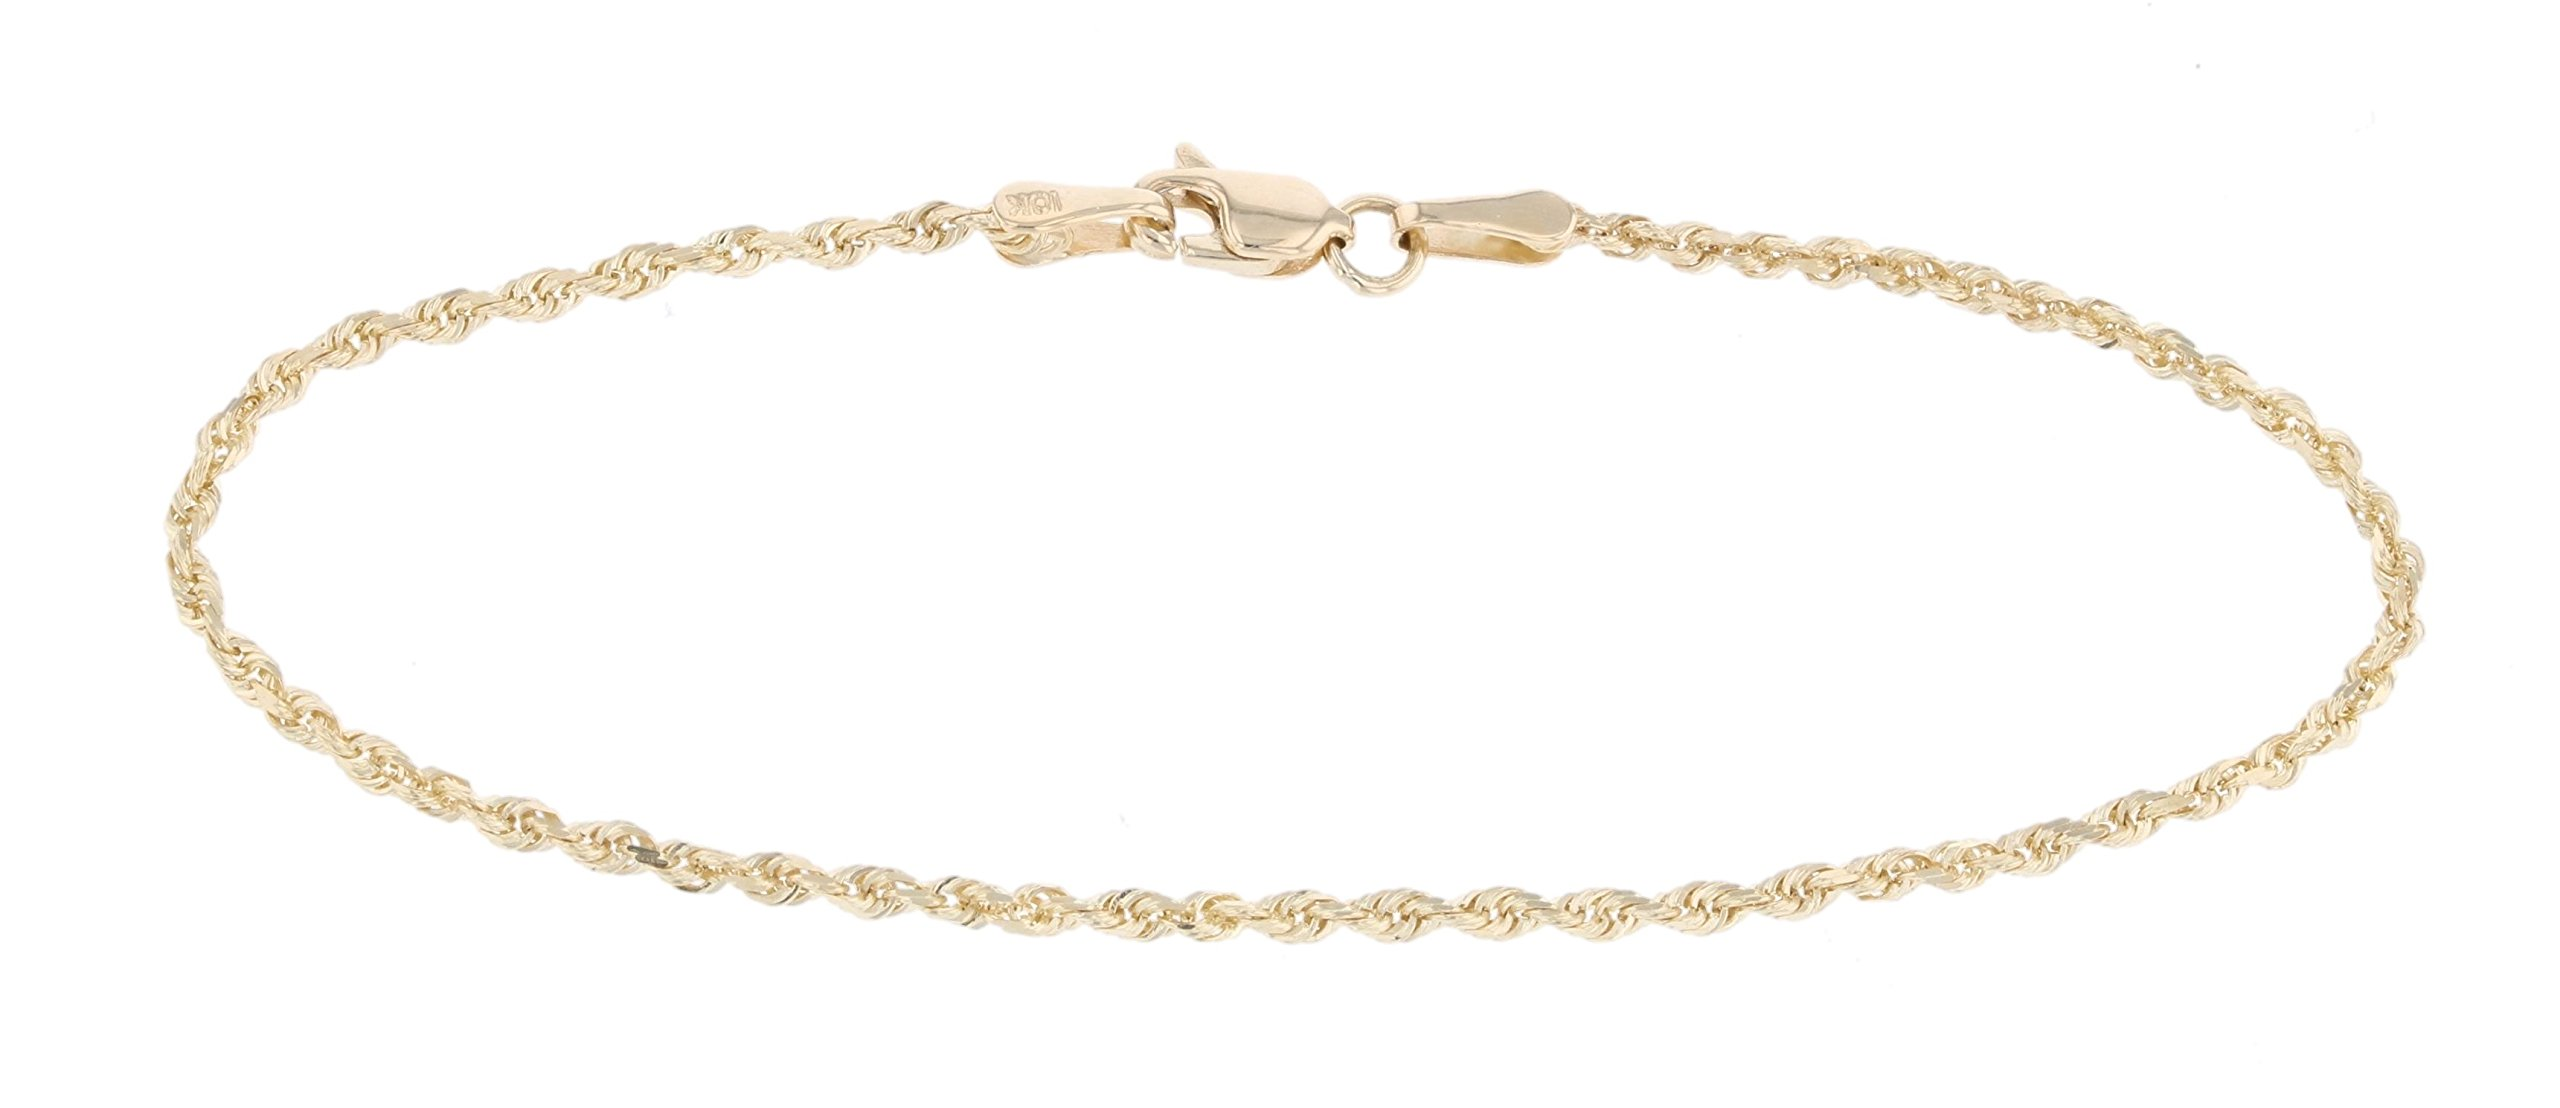 10 InchThin Solid Diamond Cut Rope Chain Bracelet and Anklet - 10k Yellow Gold - 2mm (0.08'')